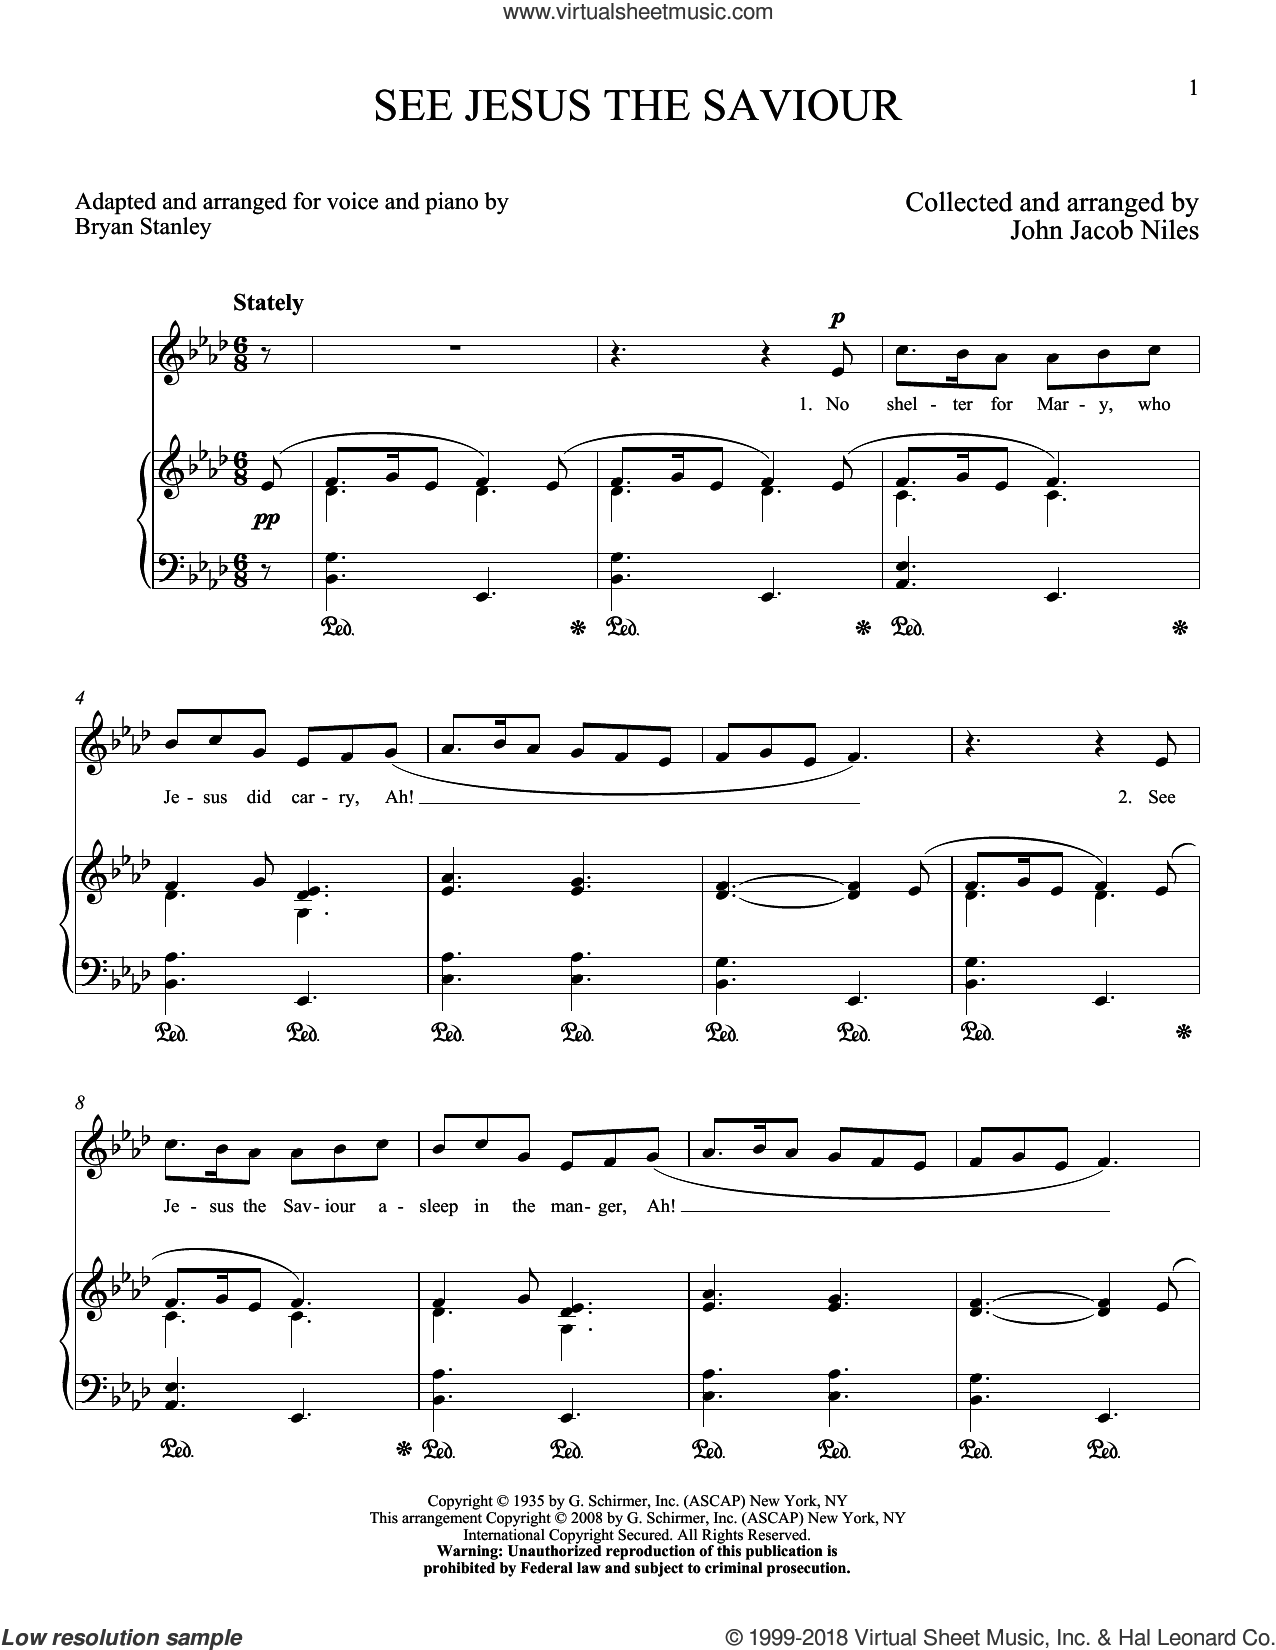 See Jesus, The Saviour sheet music for voice and piano (High Voice) by John Jacob Niles, intermediate